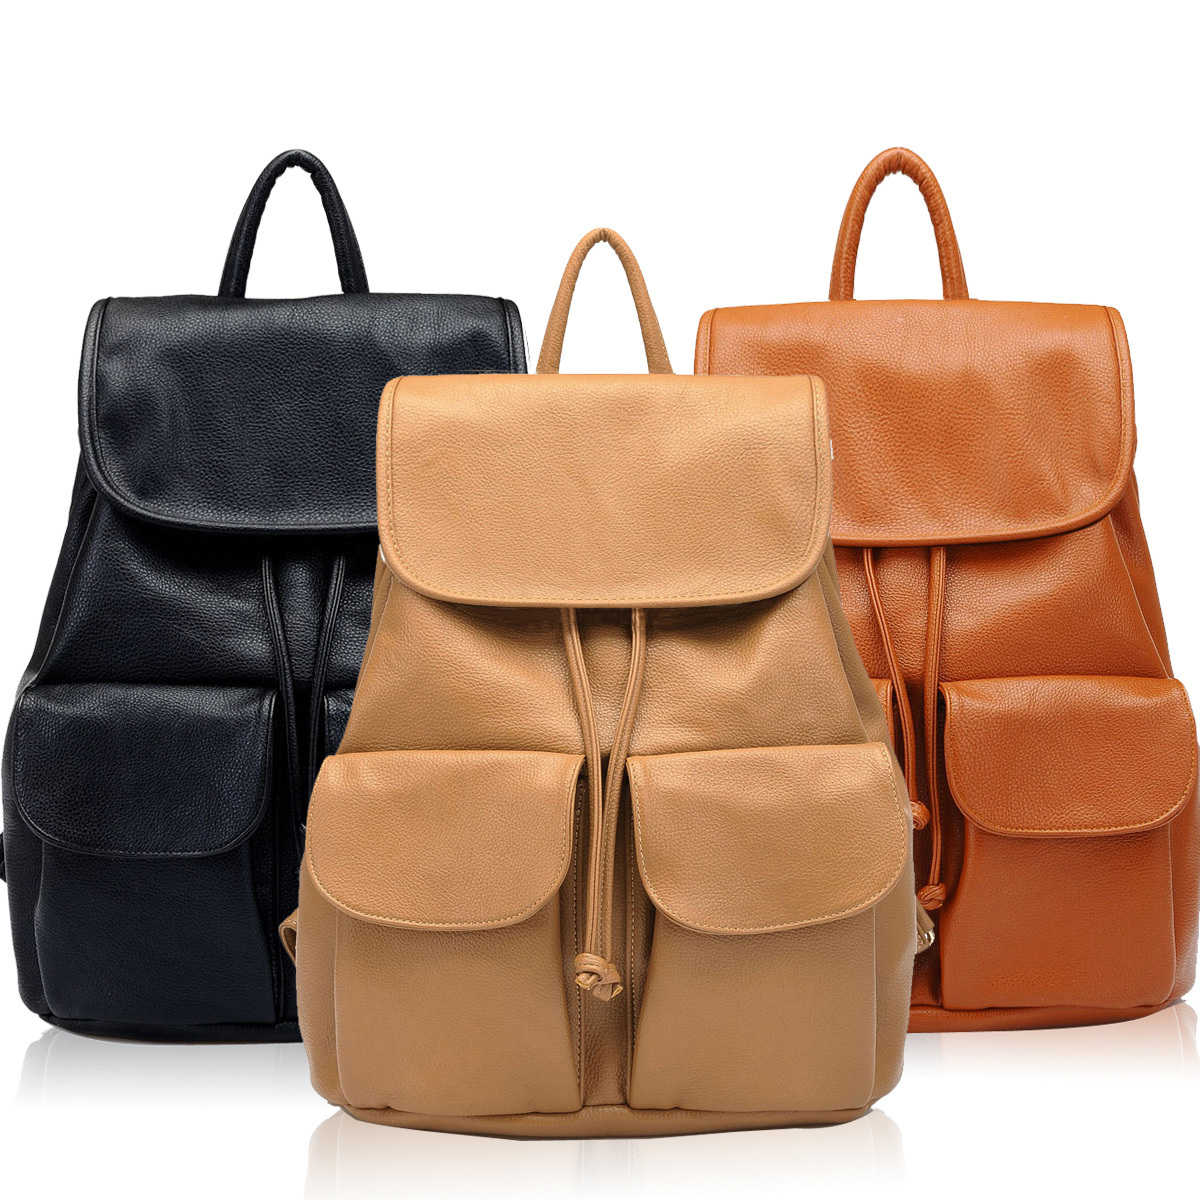 Leather Backpacks For Women ferG4Huj